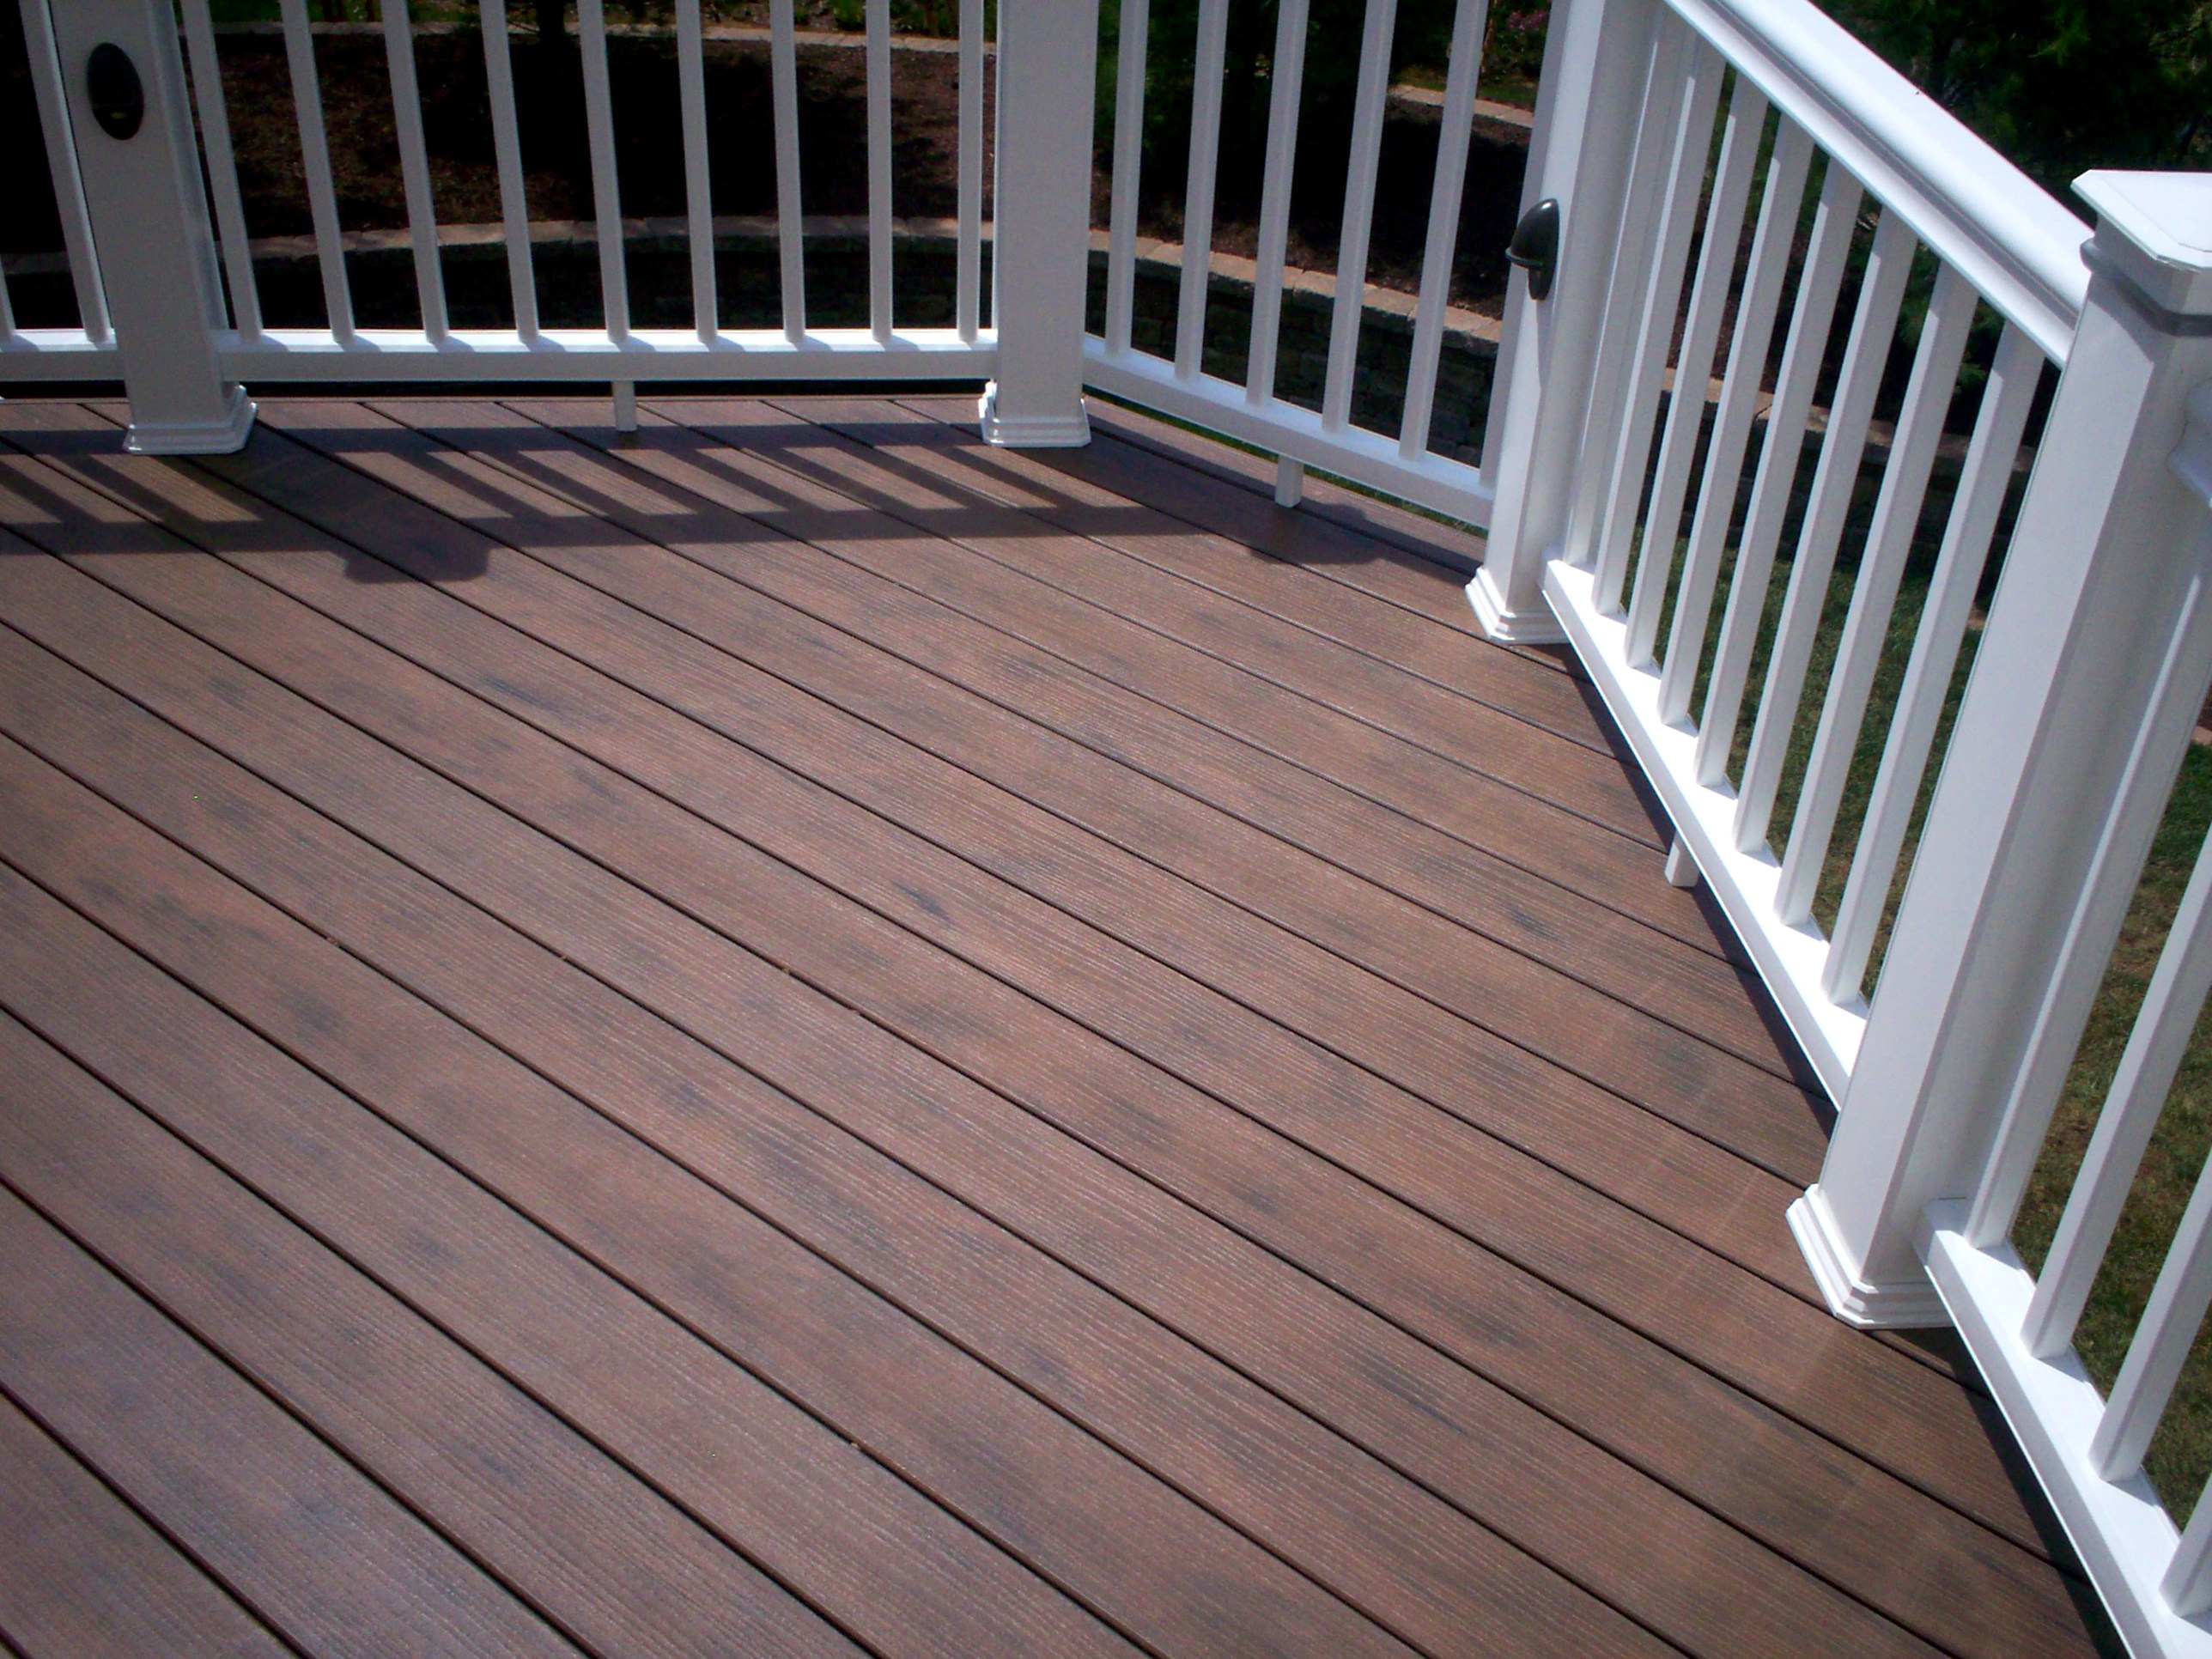 St louis mo archadeck gives five stars to earthwood for Capped composite decking prices